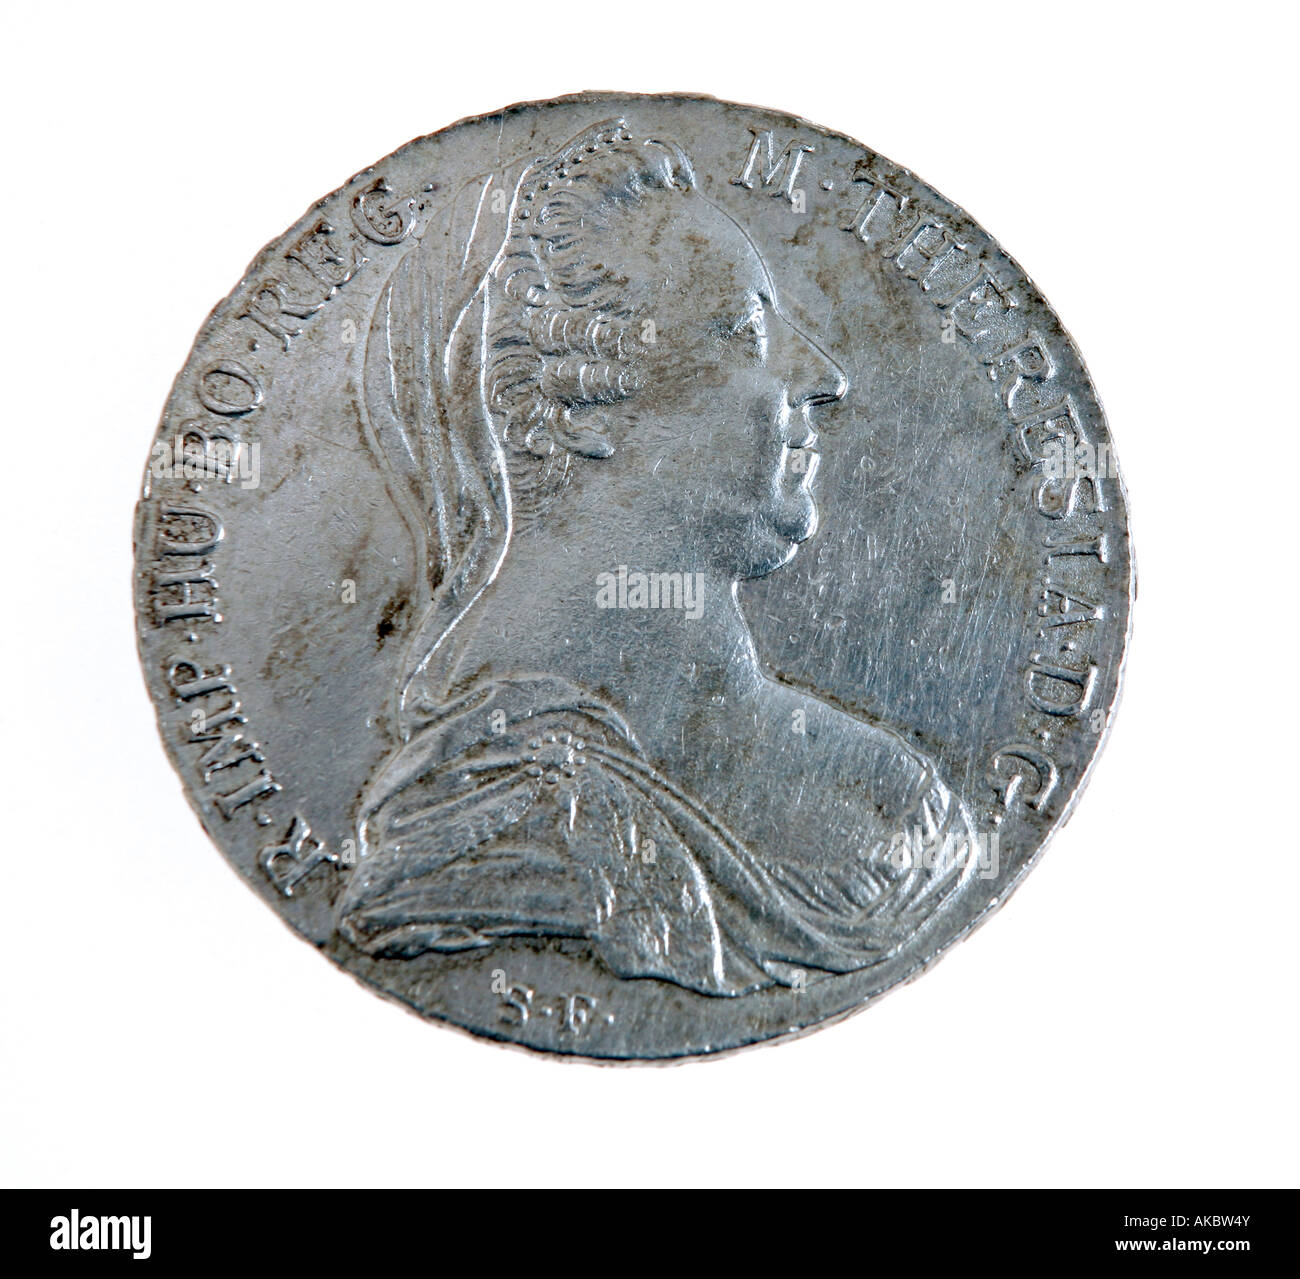 A Maria Theresia silver thaler - the coin from which the dollar got its name. - Stock Image